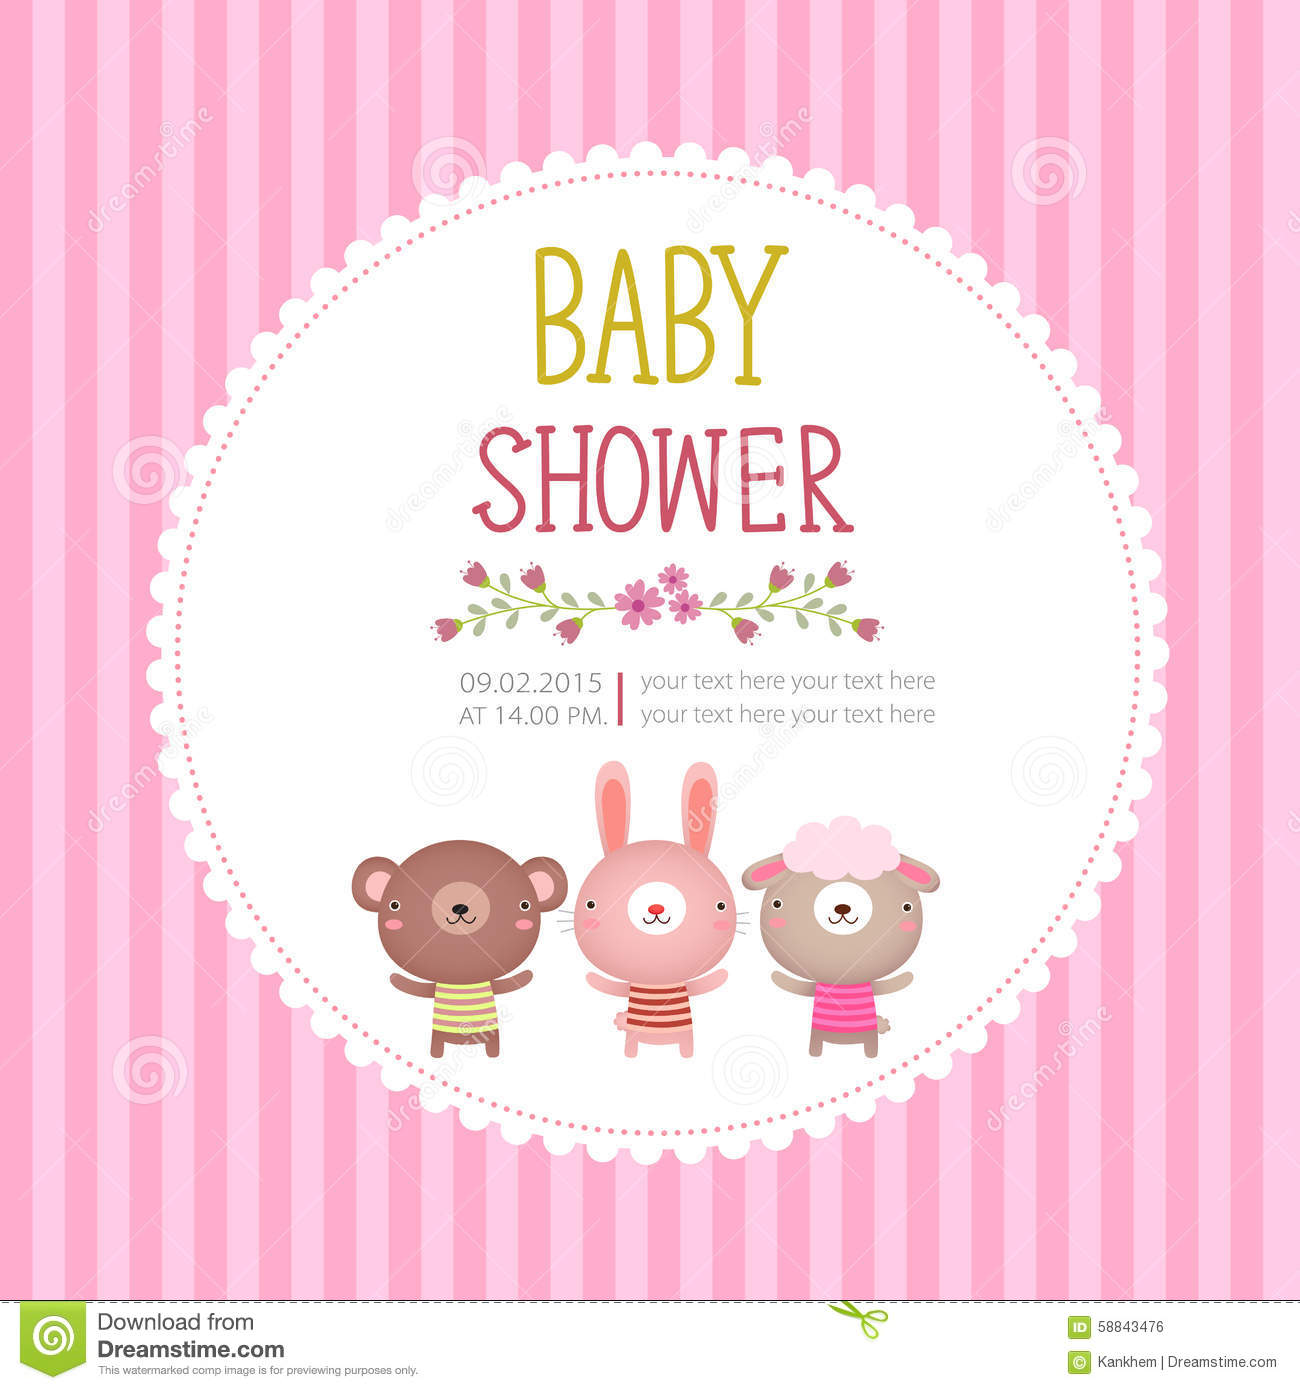 Baby Shower Invitation Card Template On Pink Background Stock Vector - Pink baby shower invitation templates